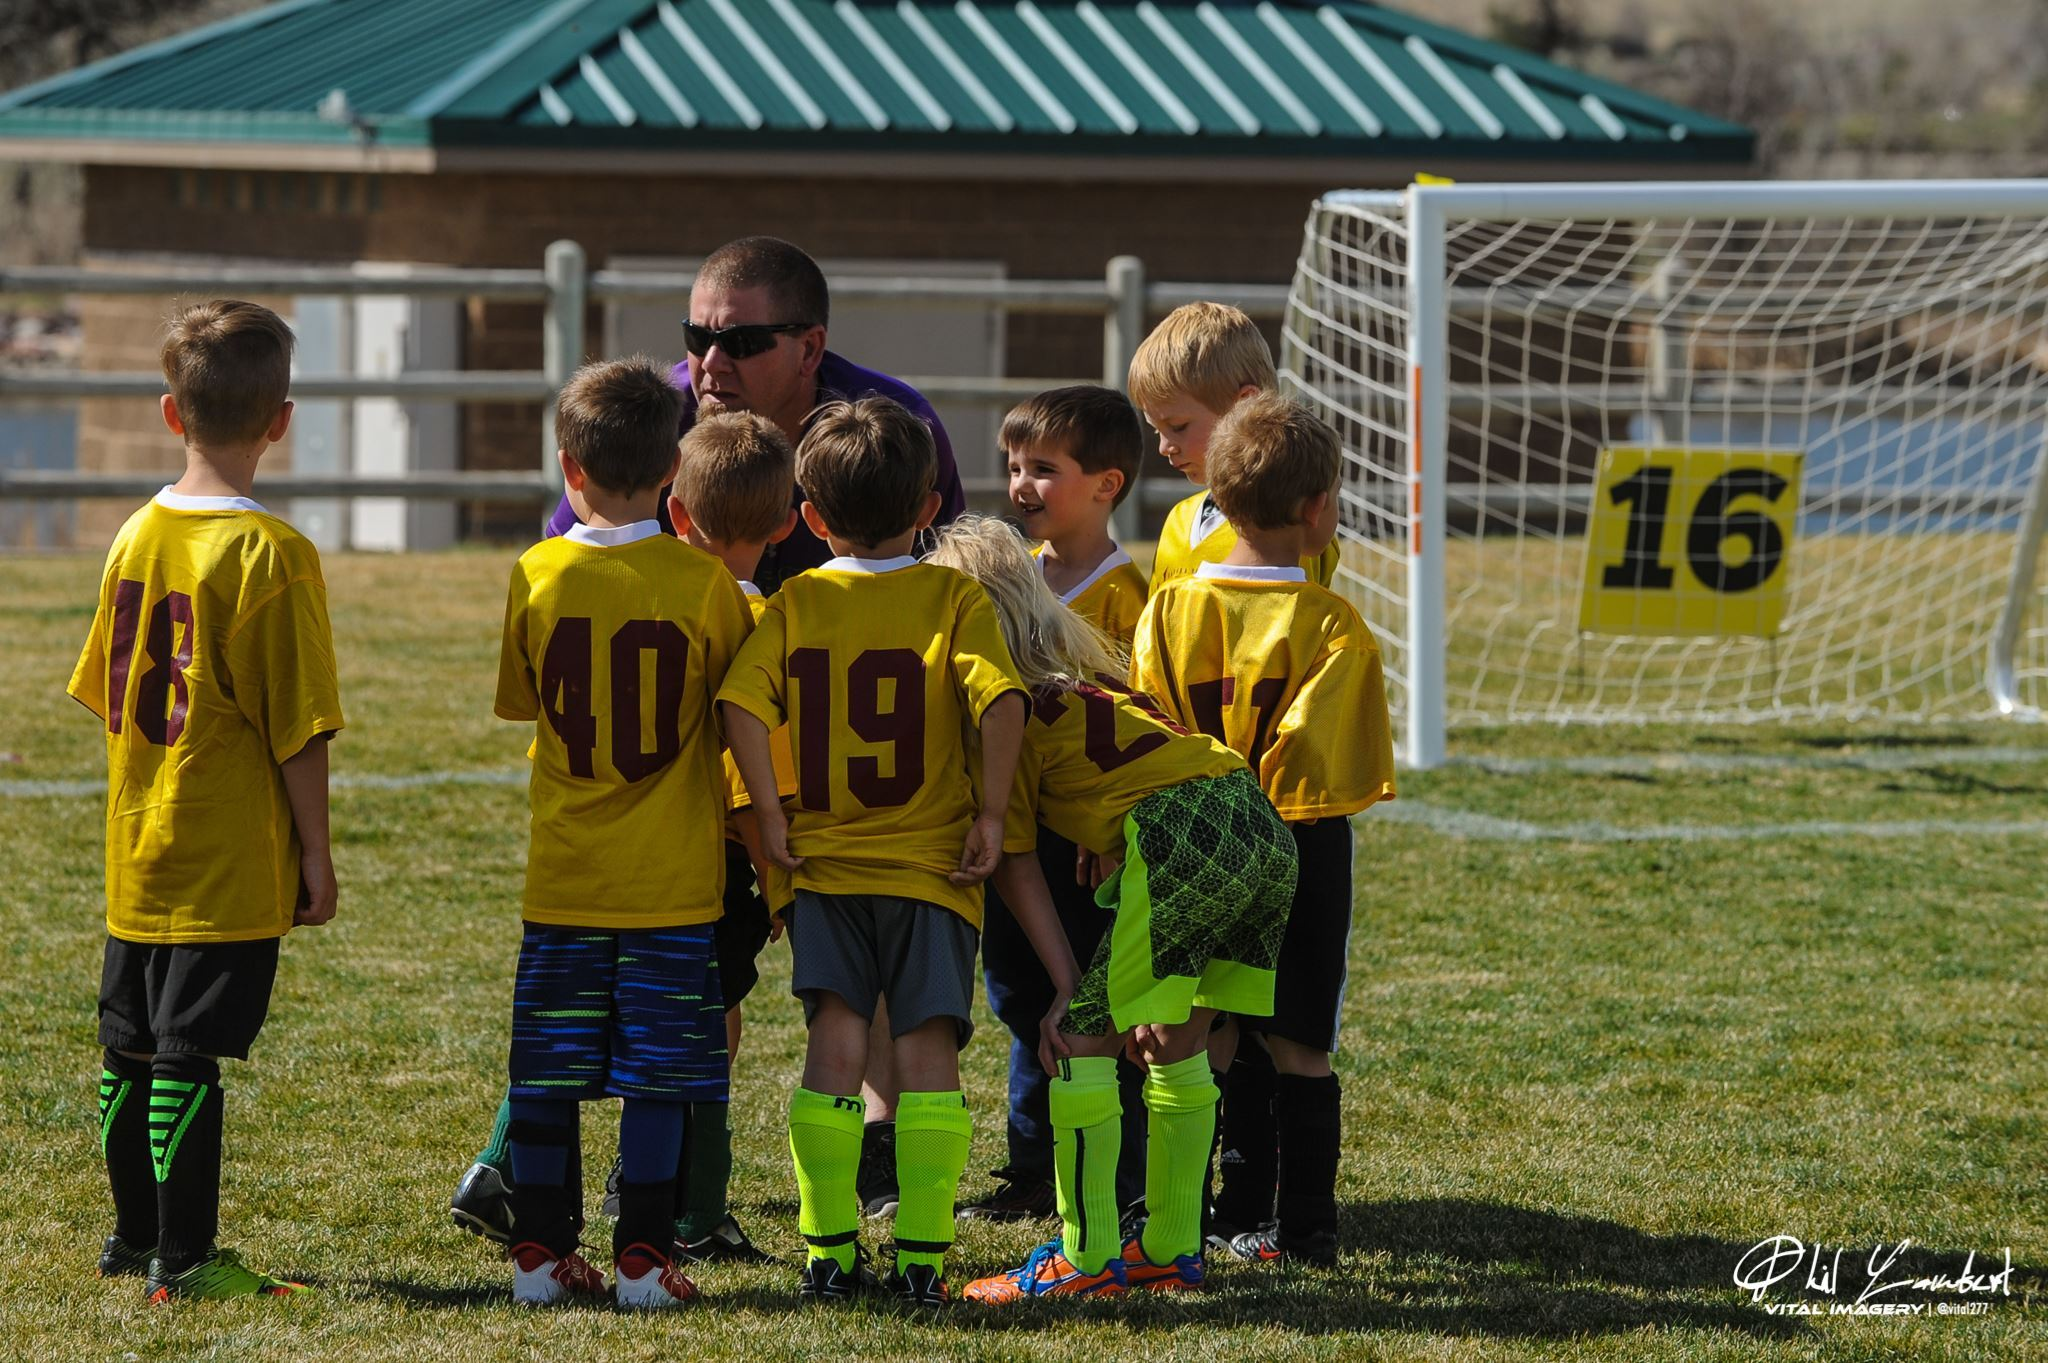 A coach huddled up with a young soccer team